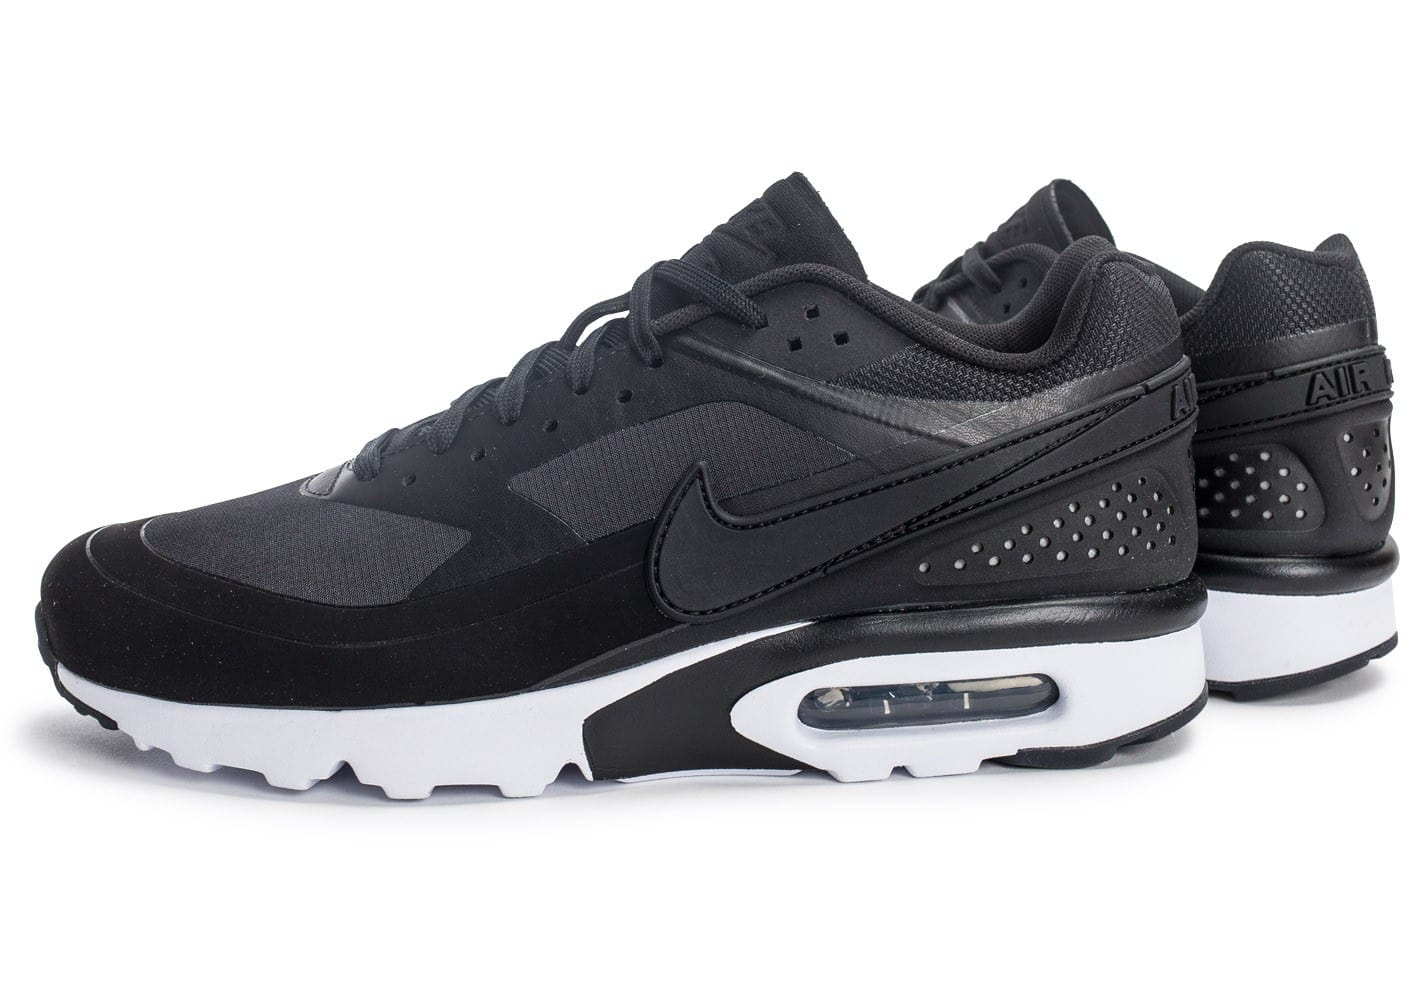 cheaper 2bc58 fa8aa ... chaussures nike air max bw ultra leather anthracite vue par paire